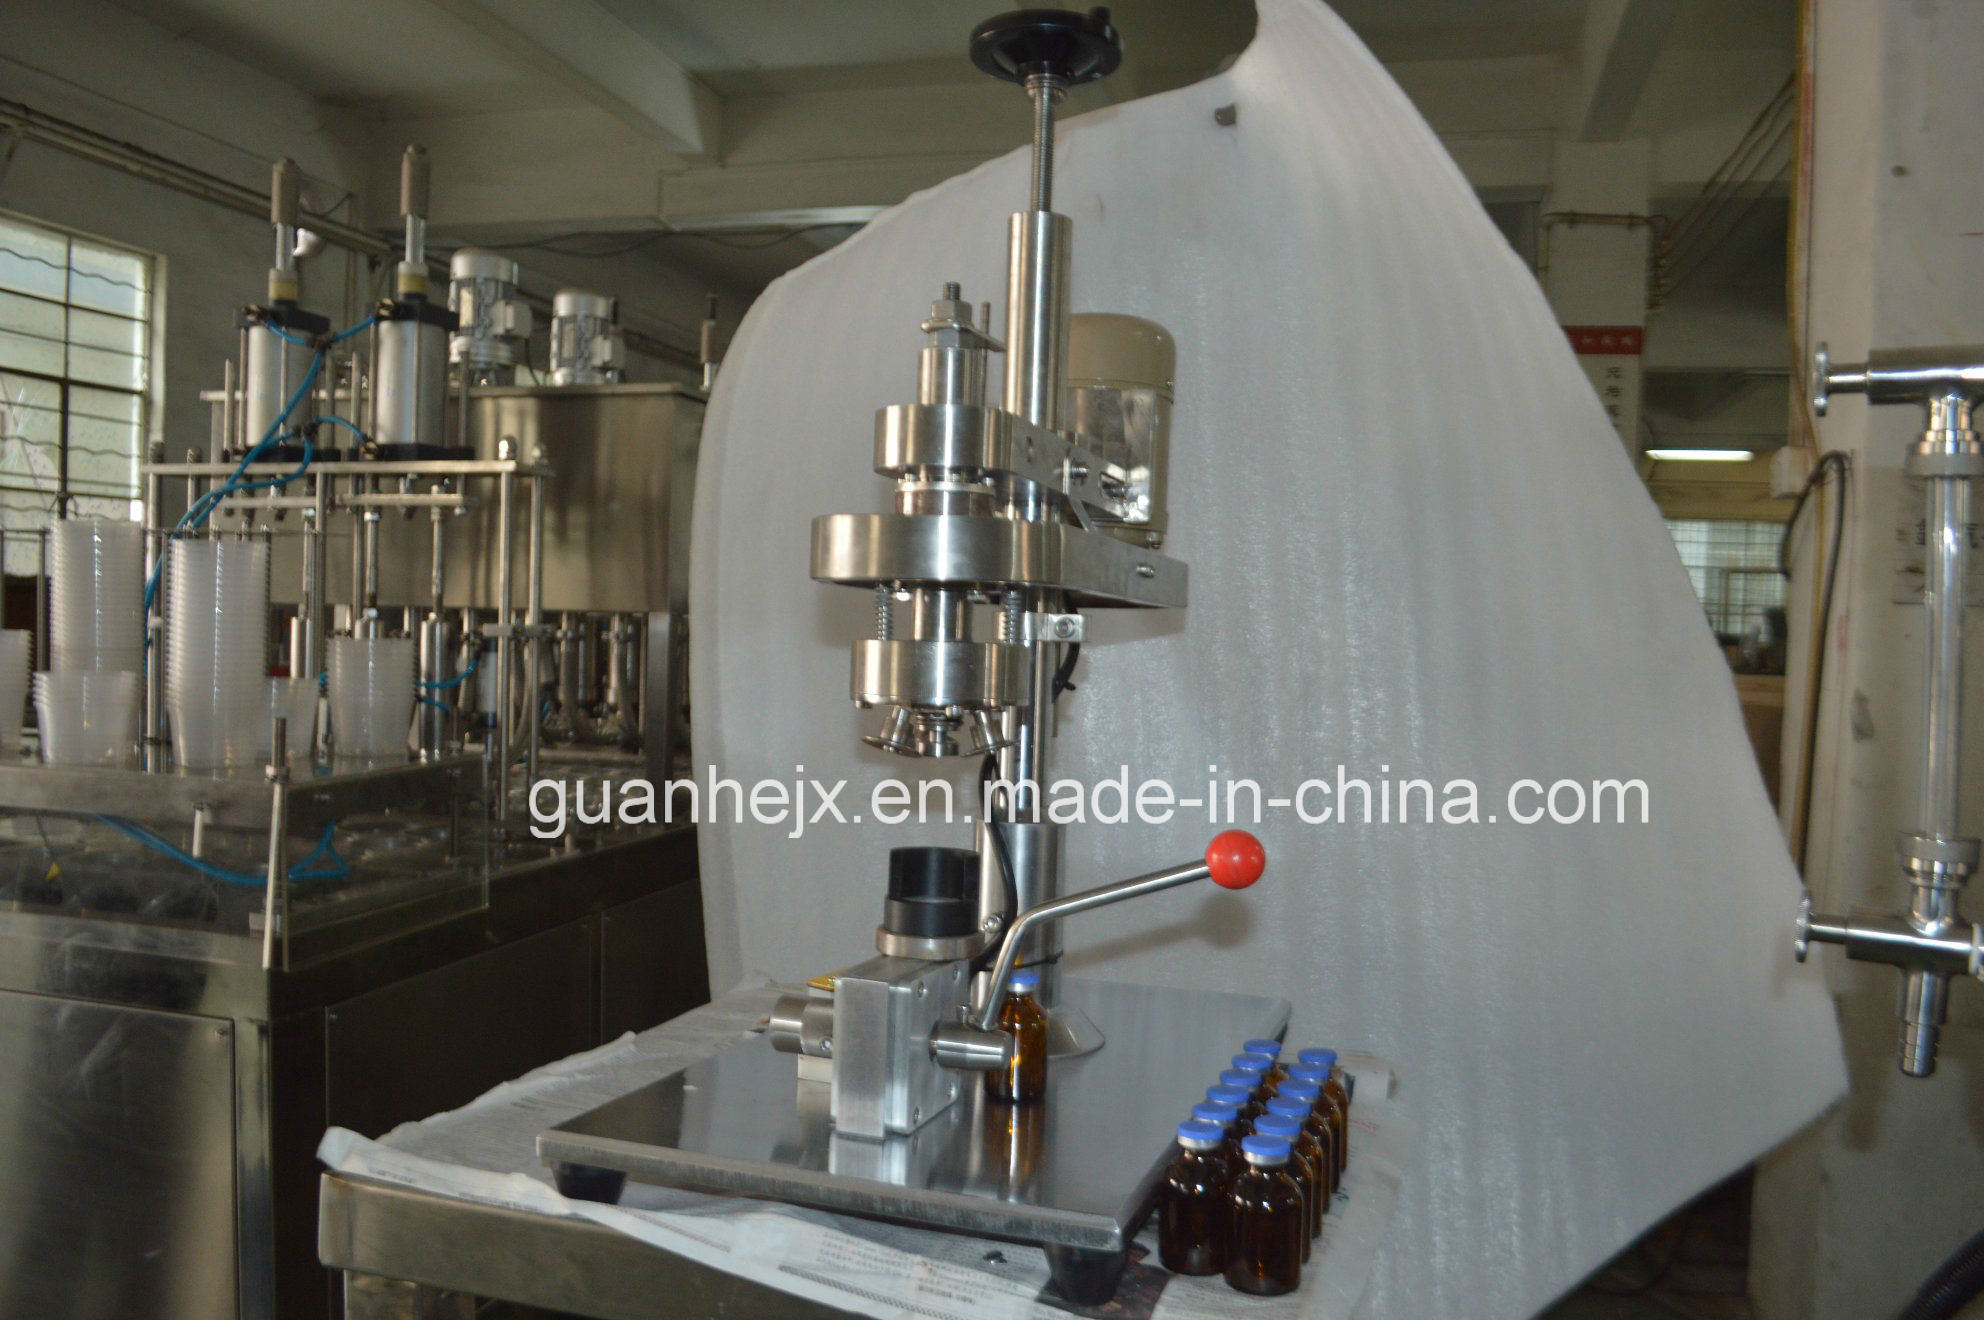 Semi-Auto Liquid Syrup Filling Machine with Electrically-Driven Filling